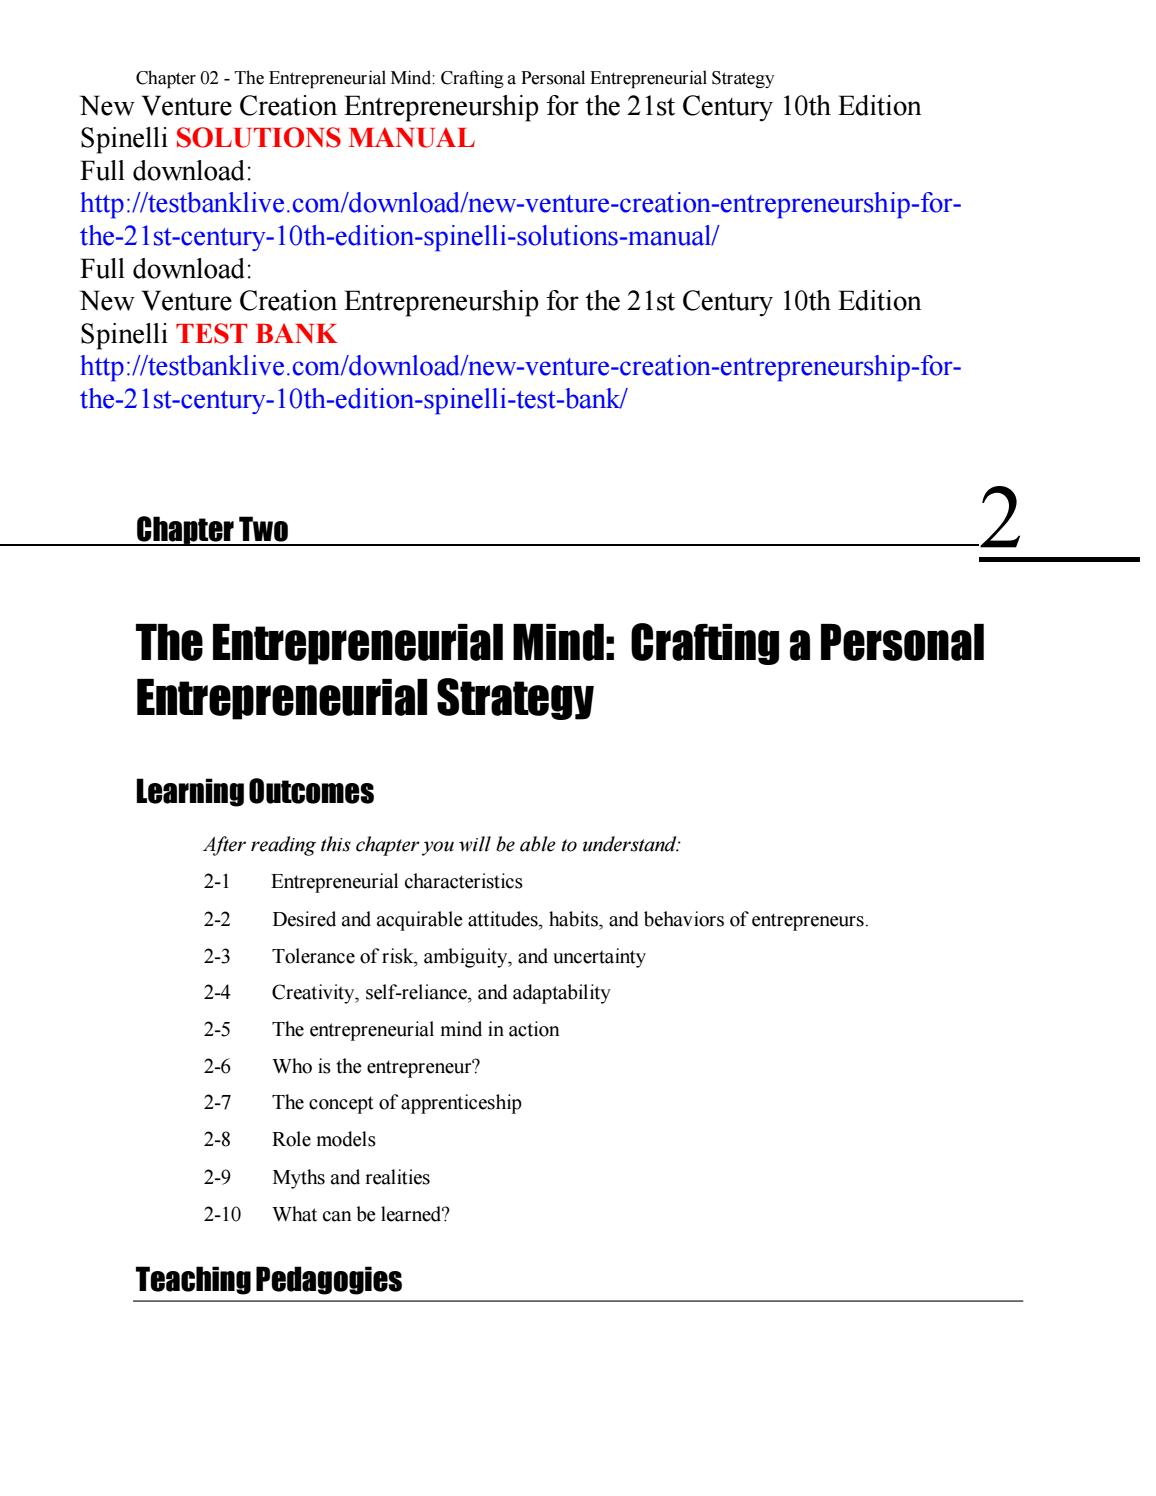 New venture creation entrepreneurship for the 21st century 10th new venture creation entrepreneurship for the 21st century 10th edition spinelli solutions manual by testbanklive3 issuu fandeluxe Image collections